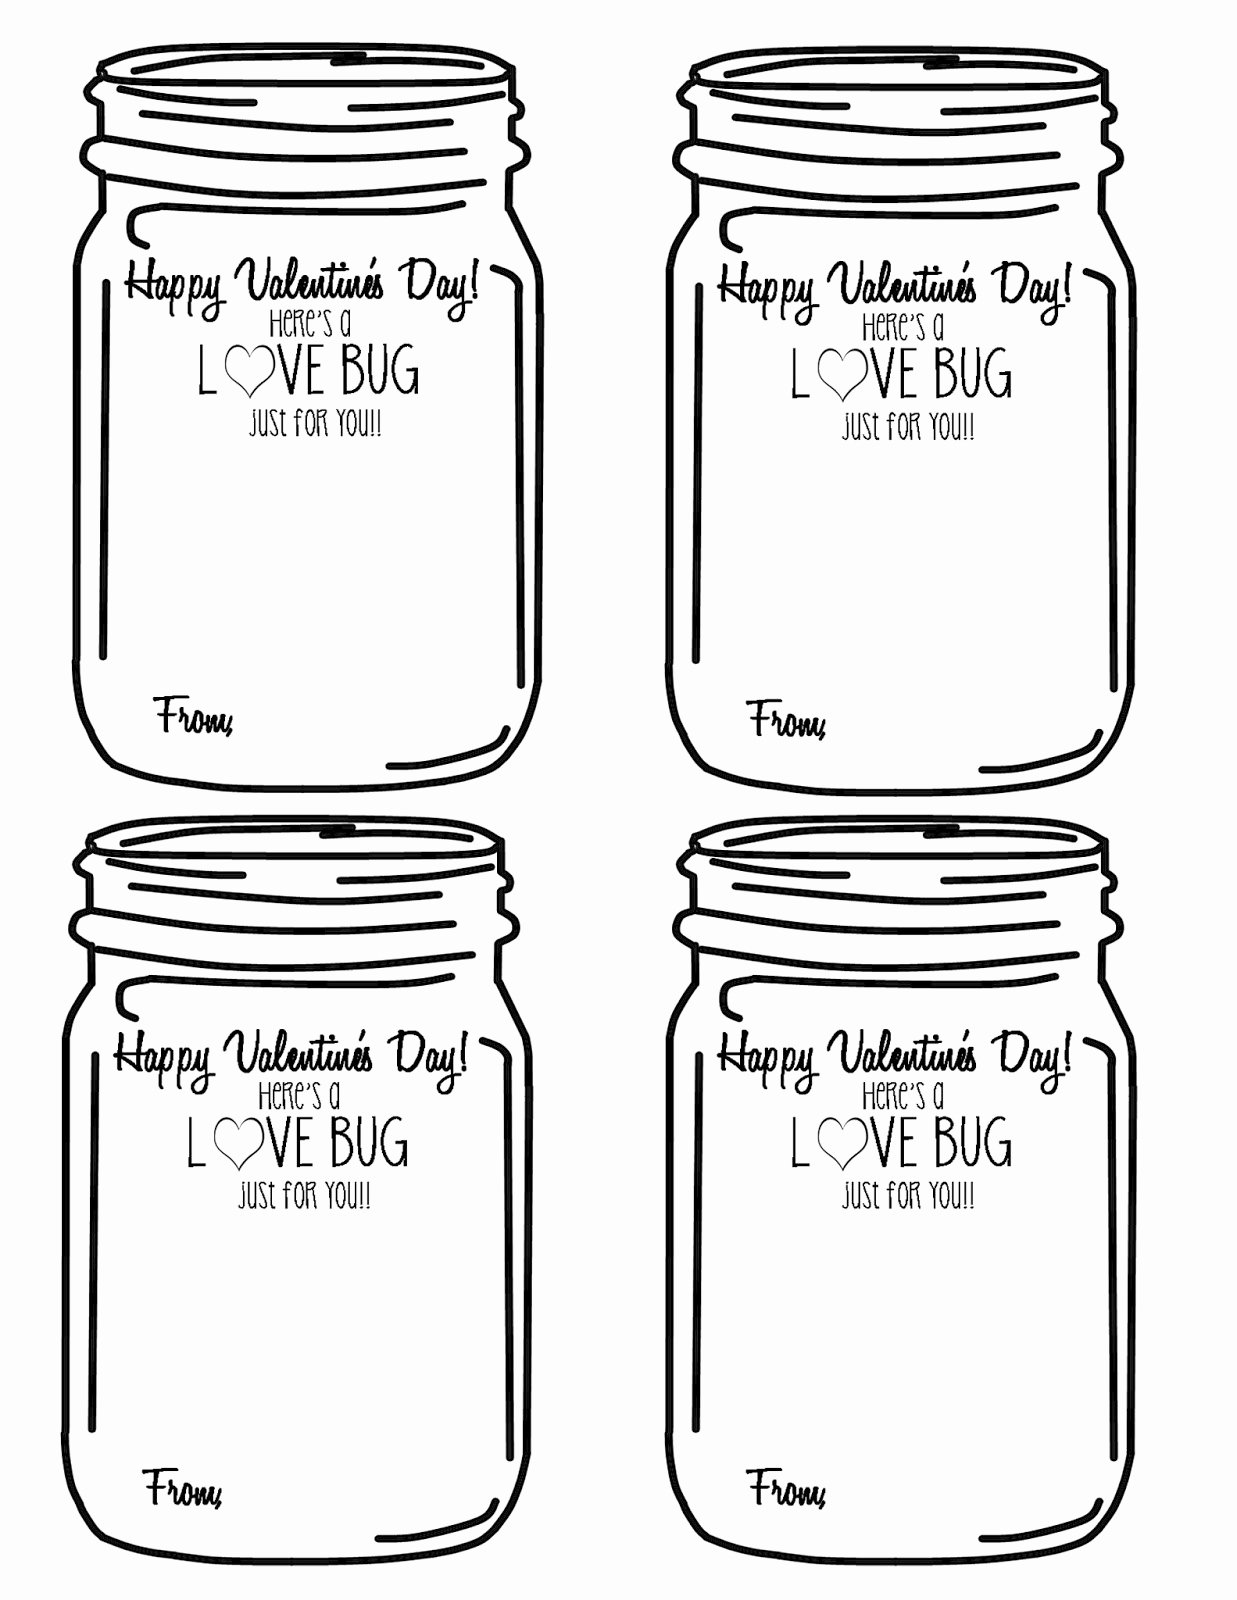 Printable Mason Jar Templates Awesome Mason Jar Printable Template – Printabletemplates